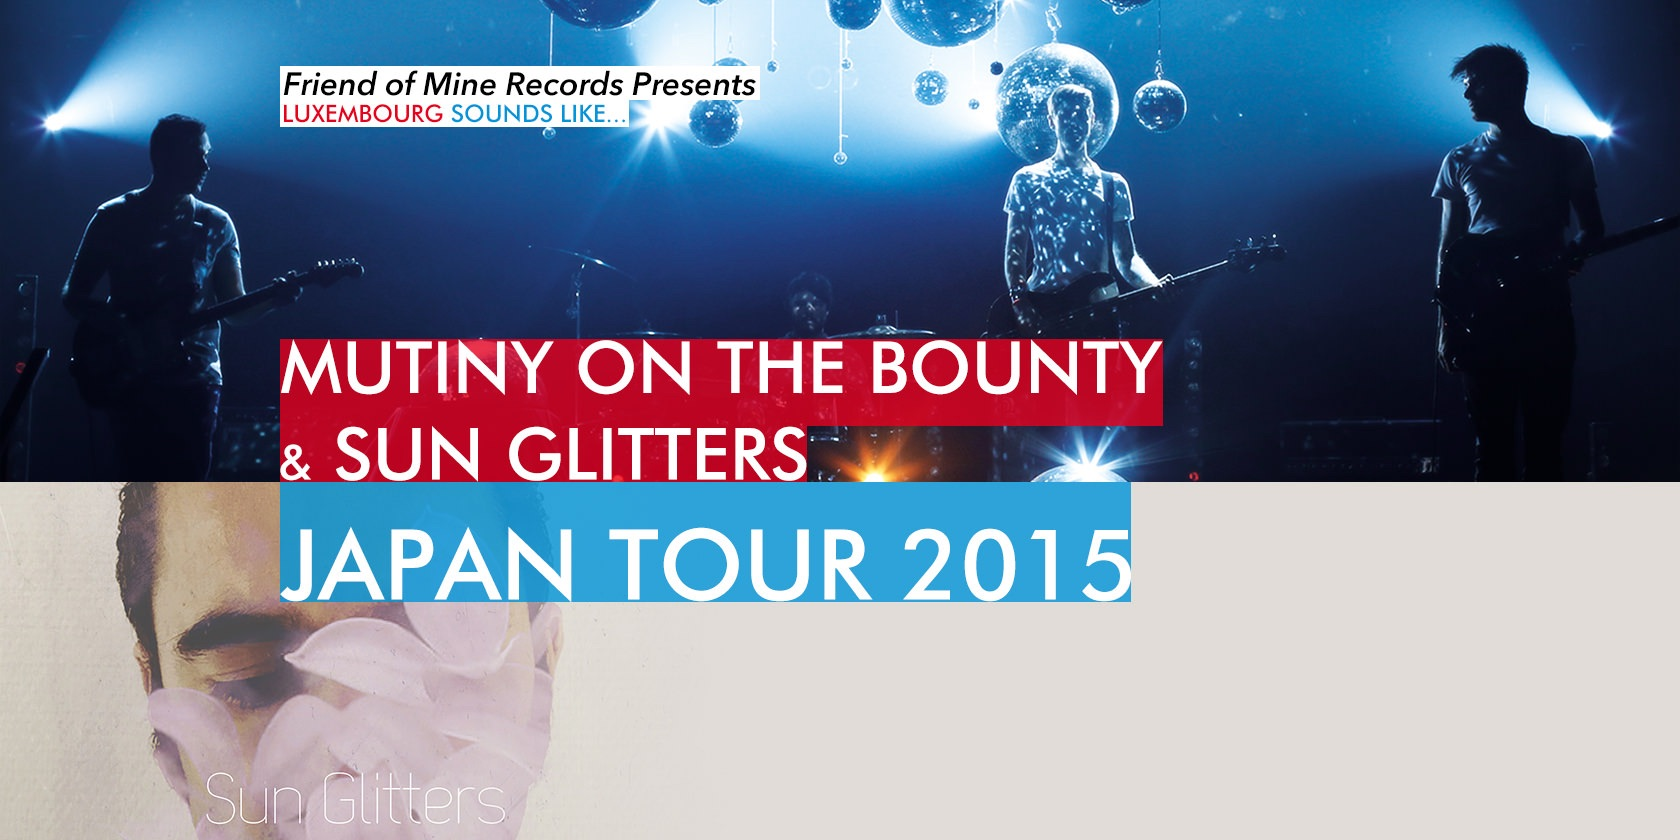 Mutiny on the Bounty & Sun Glitters JAPAN TOUR 2015